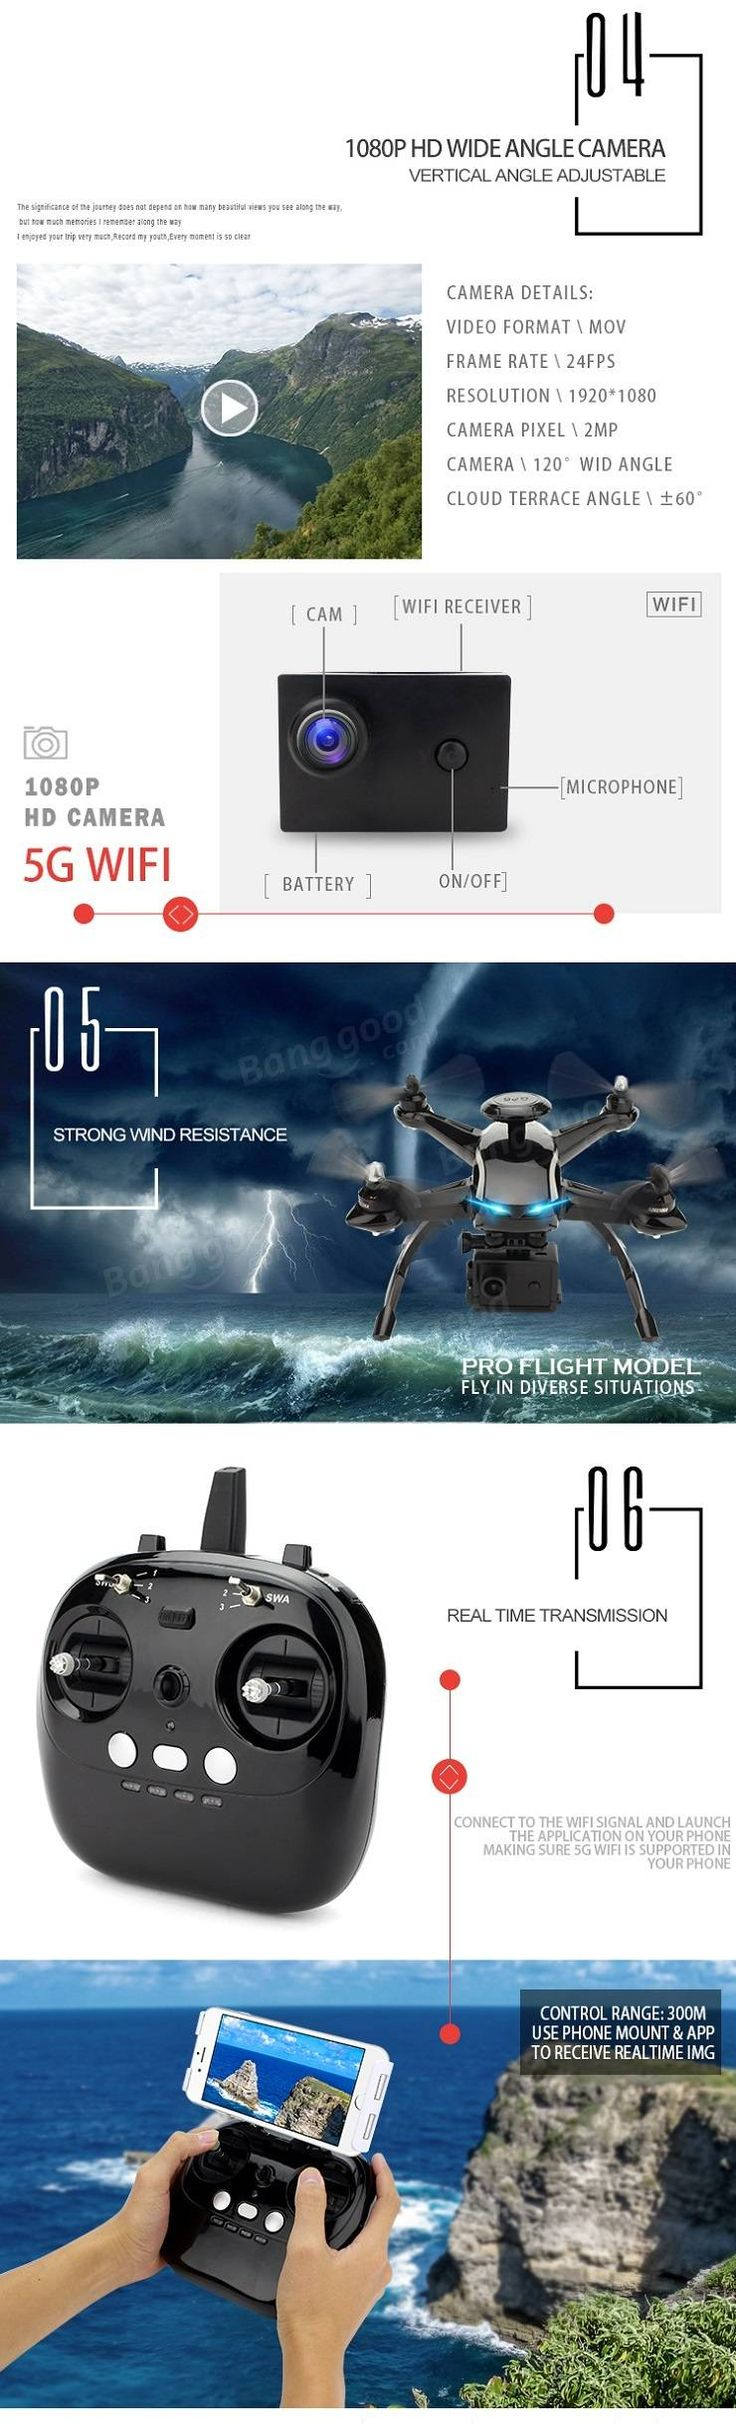 AOSENMA CG035 Double GPS Optical Positioning WIFI FPV With 1080P HD Camera RC Drone Quadcopter